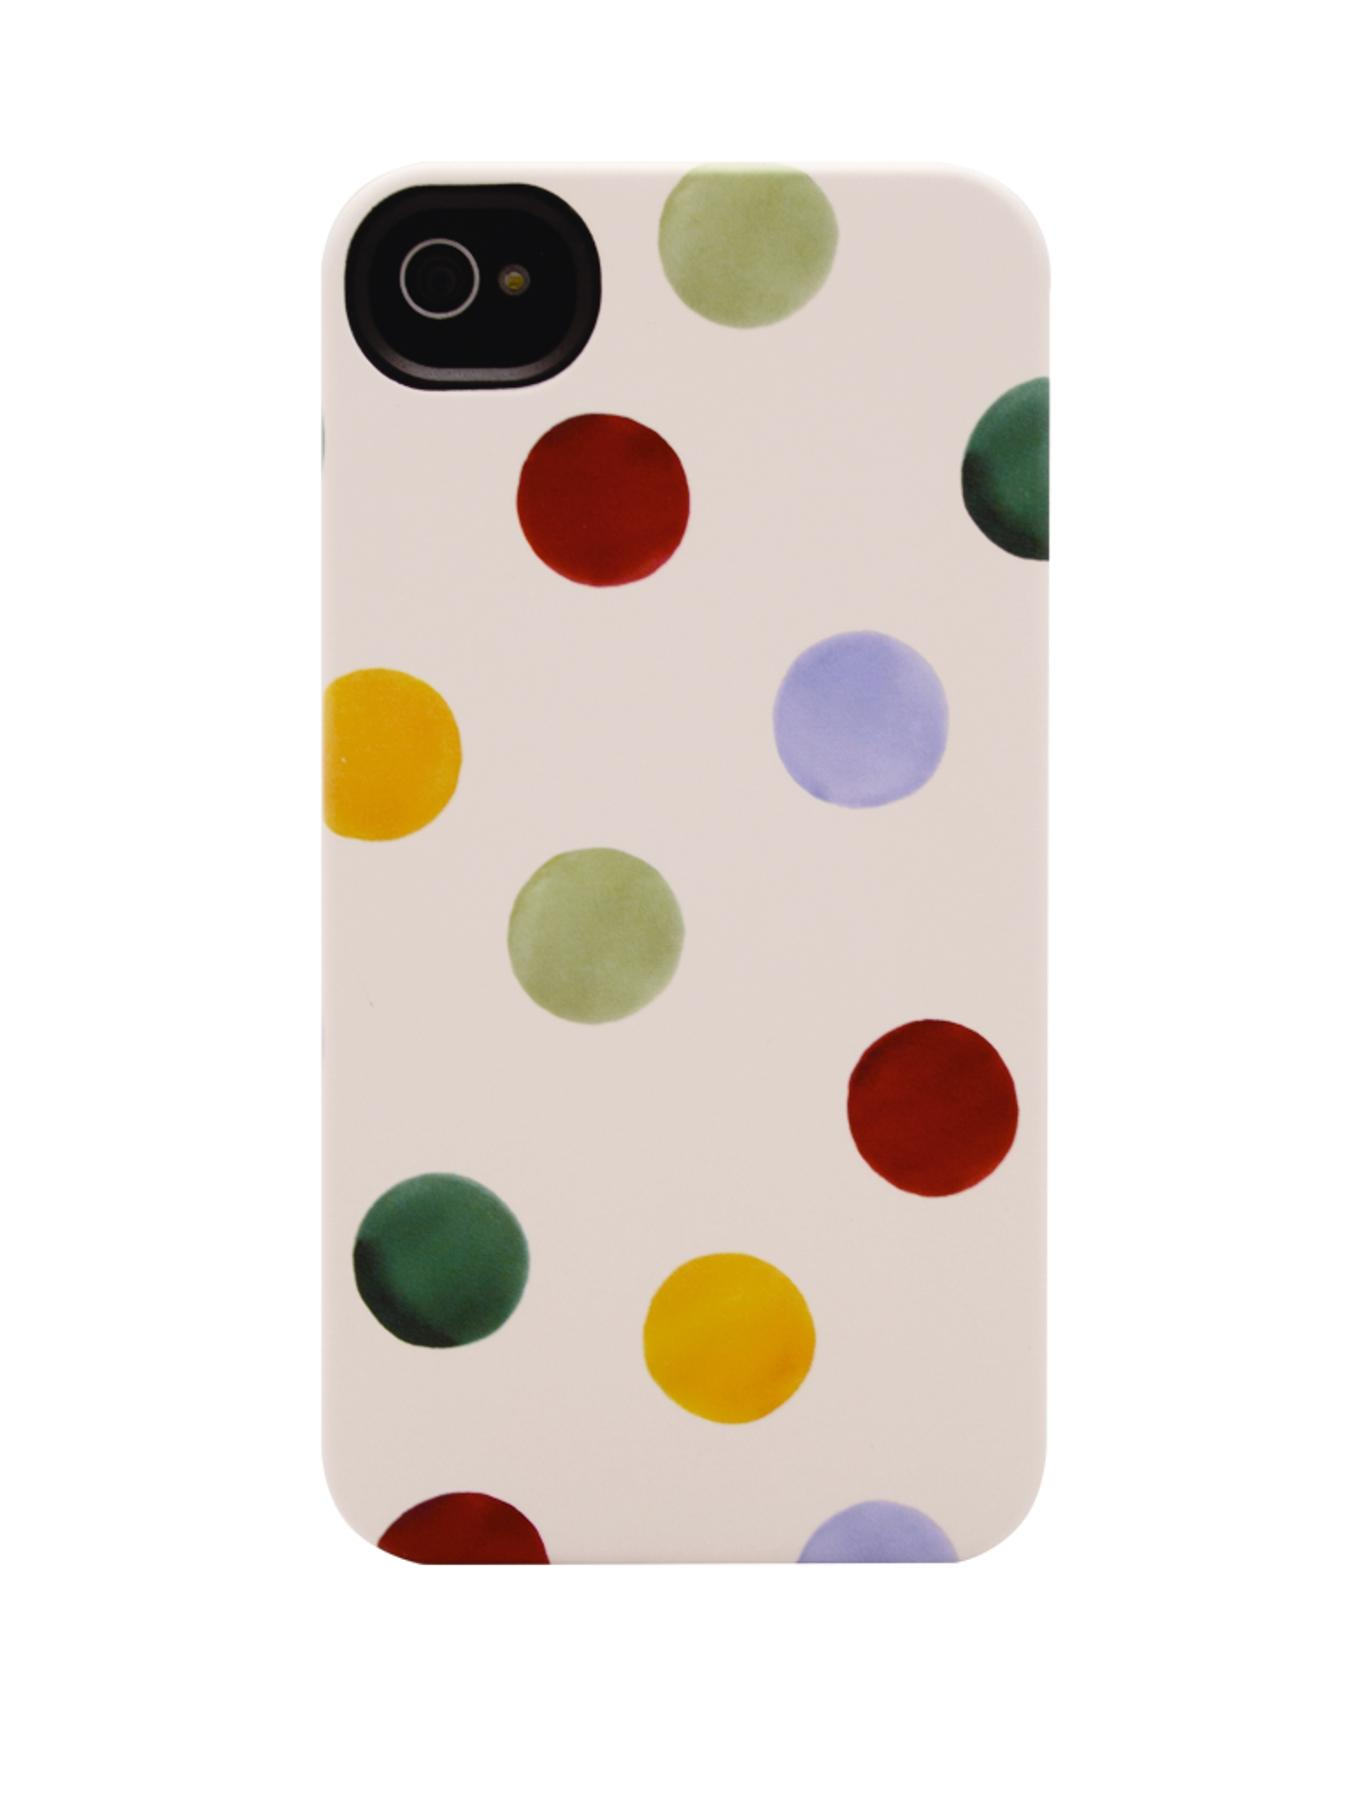 Polkadot iPhone 4/4S Case